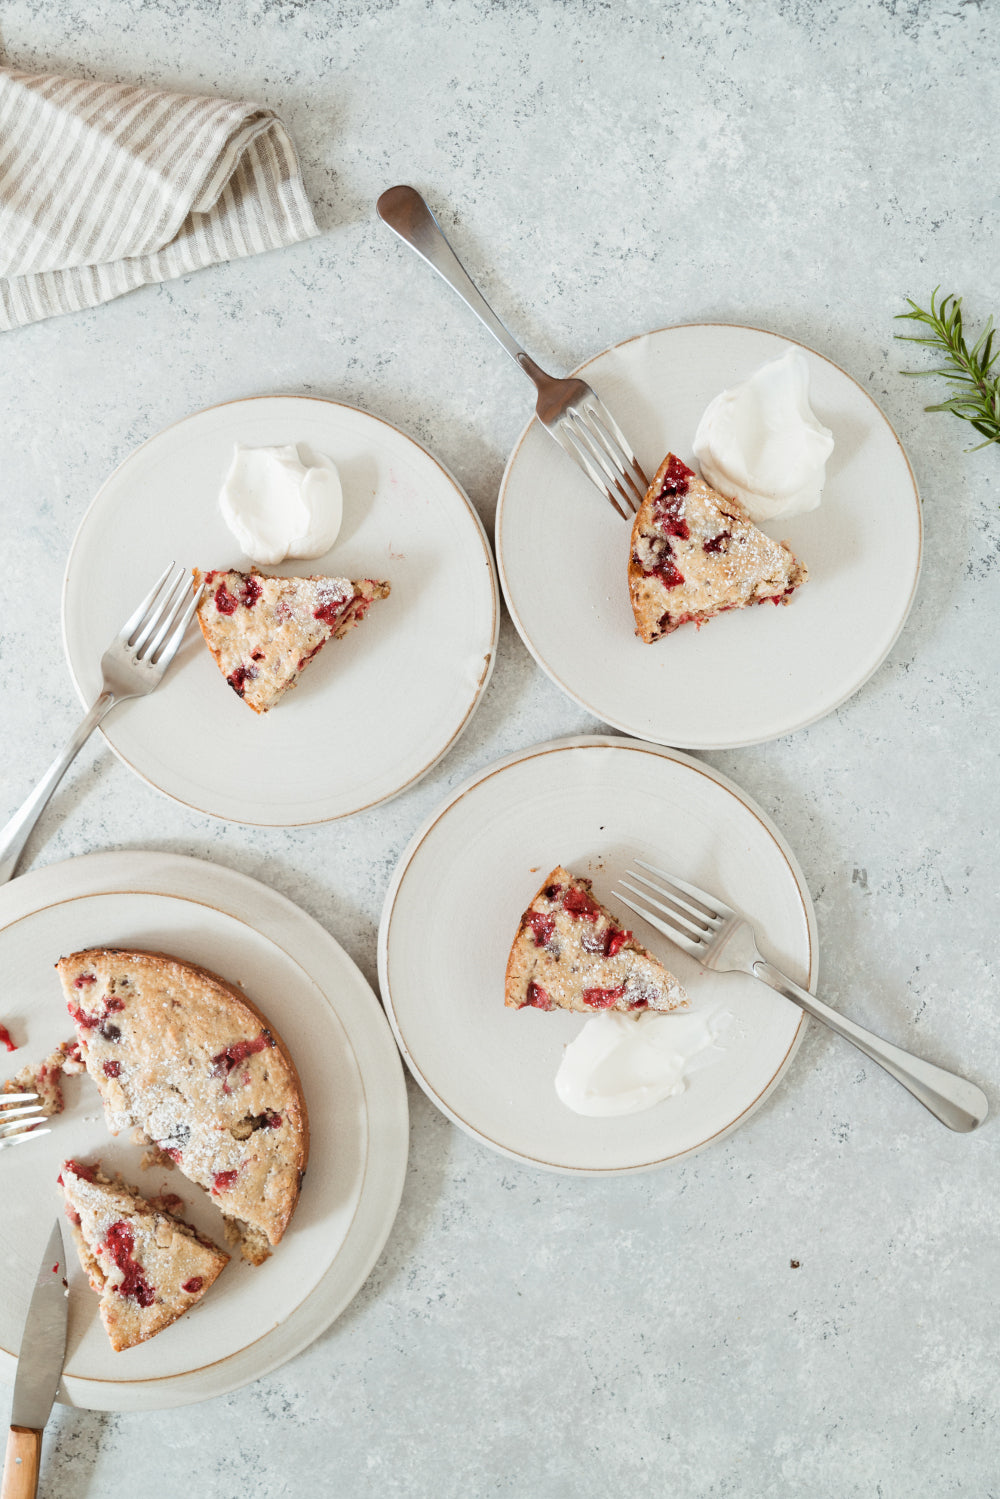 The Perfect Holiday Dessert: Easy Skillet Cranberry Cake